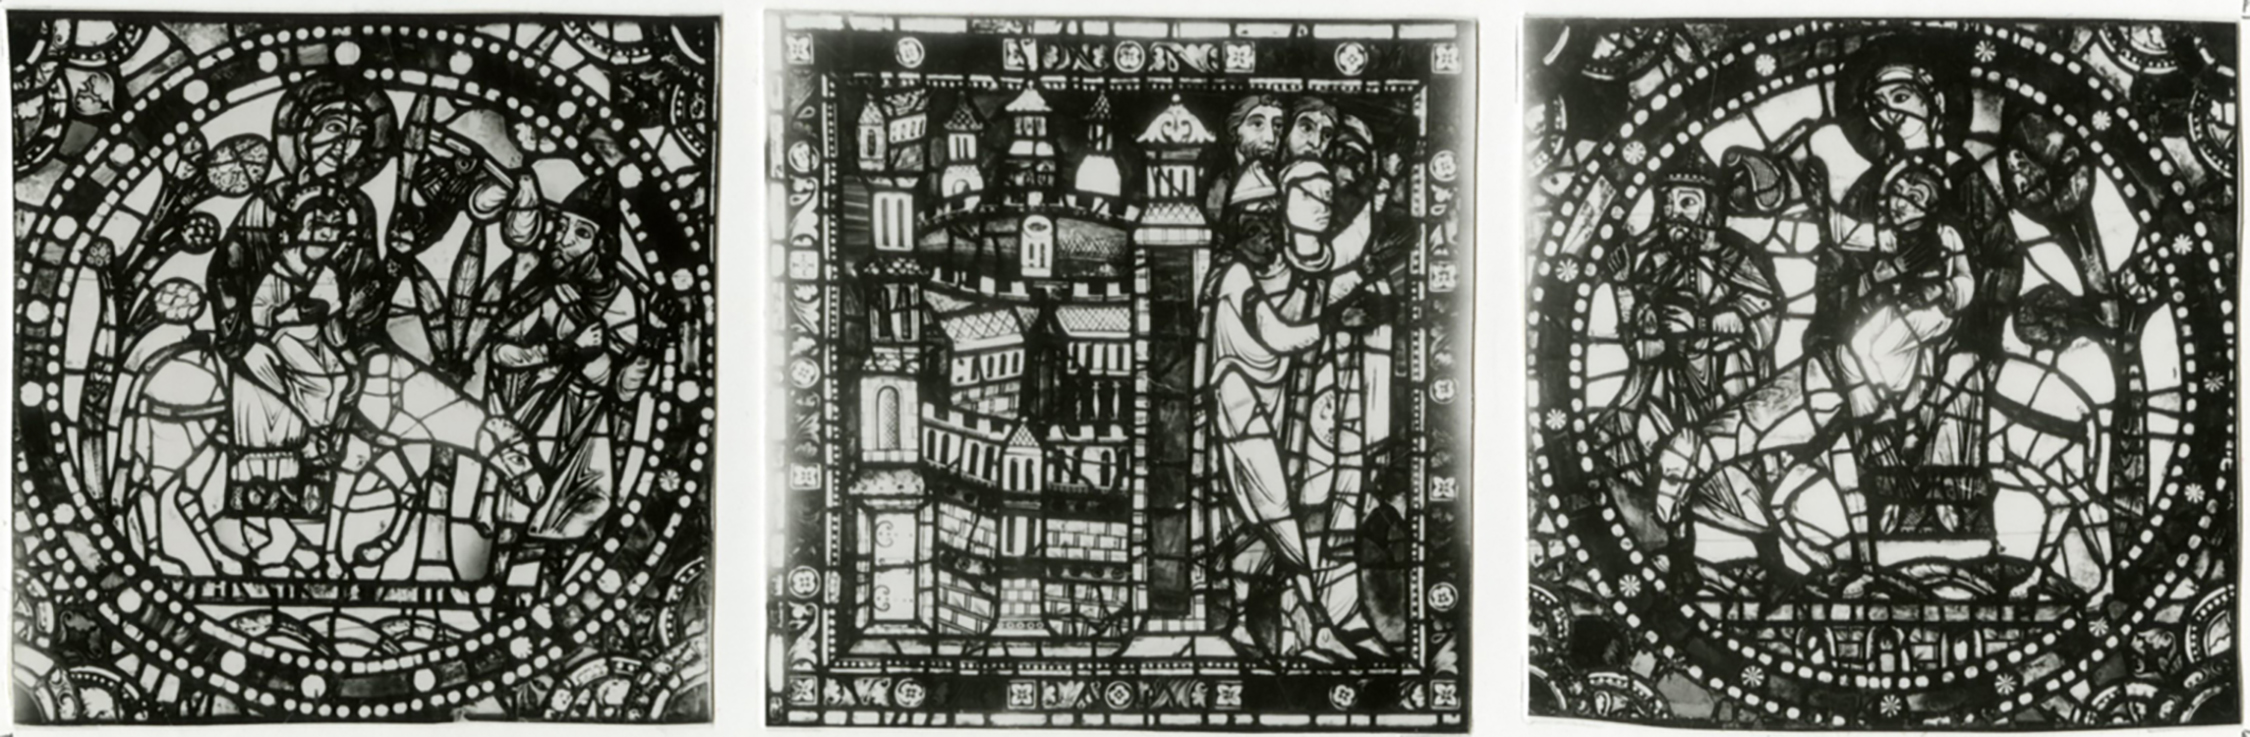 Figure 4: The Flight into Egypt (left) and the Arrival of the Holy Family at Sotine (center and right), from the Infancy of Christ window of the Cathedral of Chartres, France, c. 1150-1155.